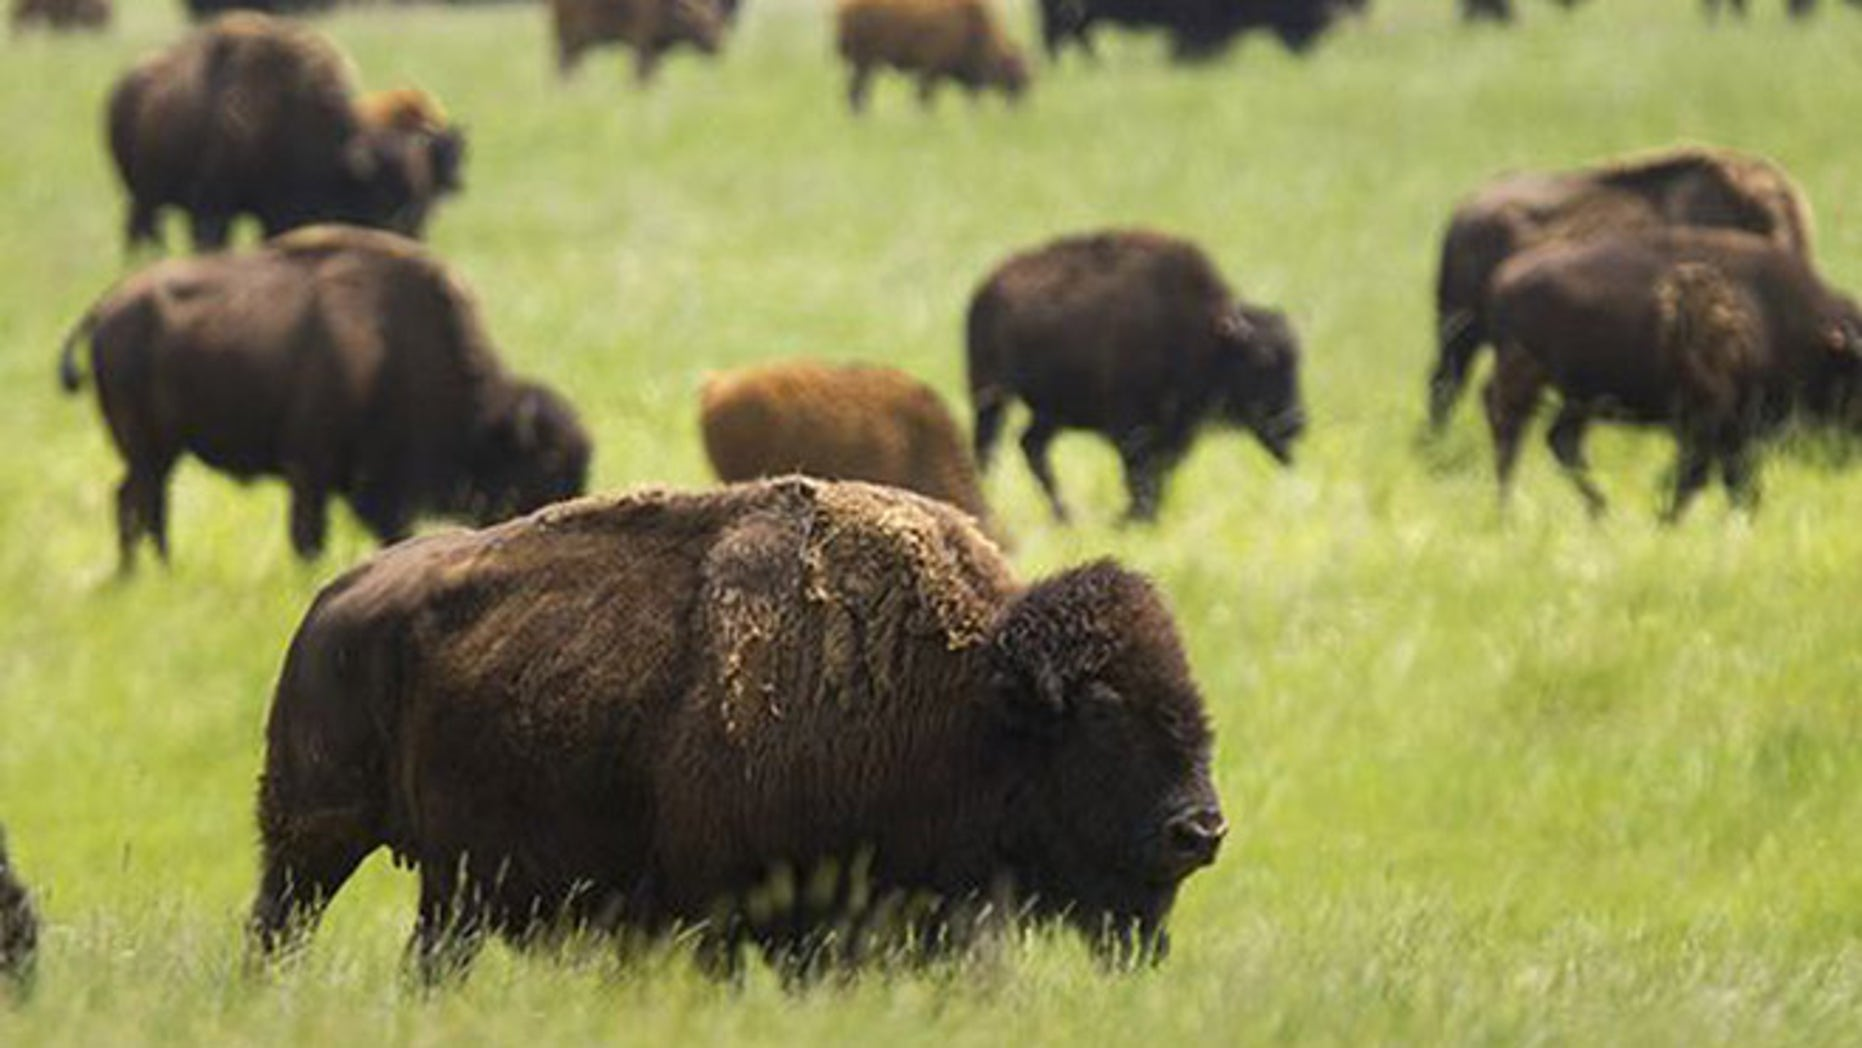 Congress Votes To Designate Bison As National Mammal Fox News